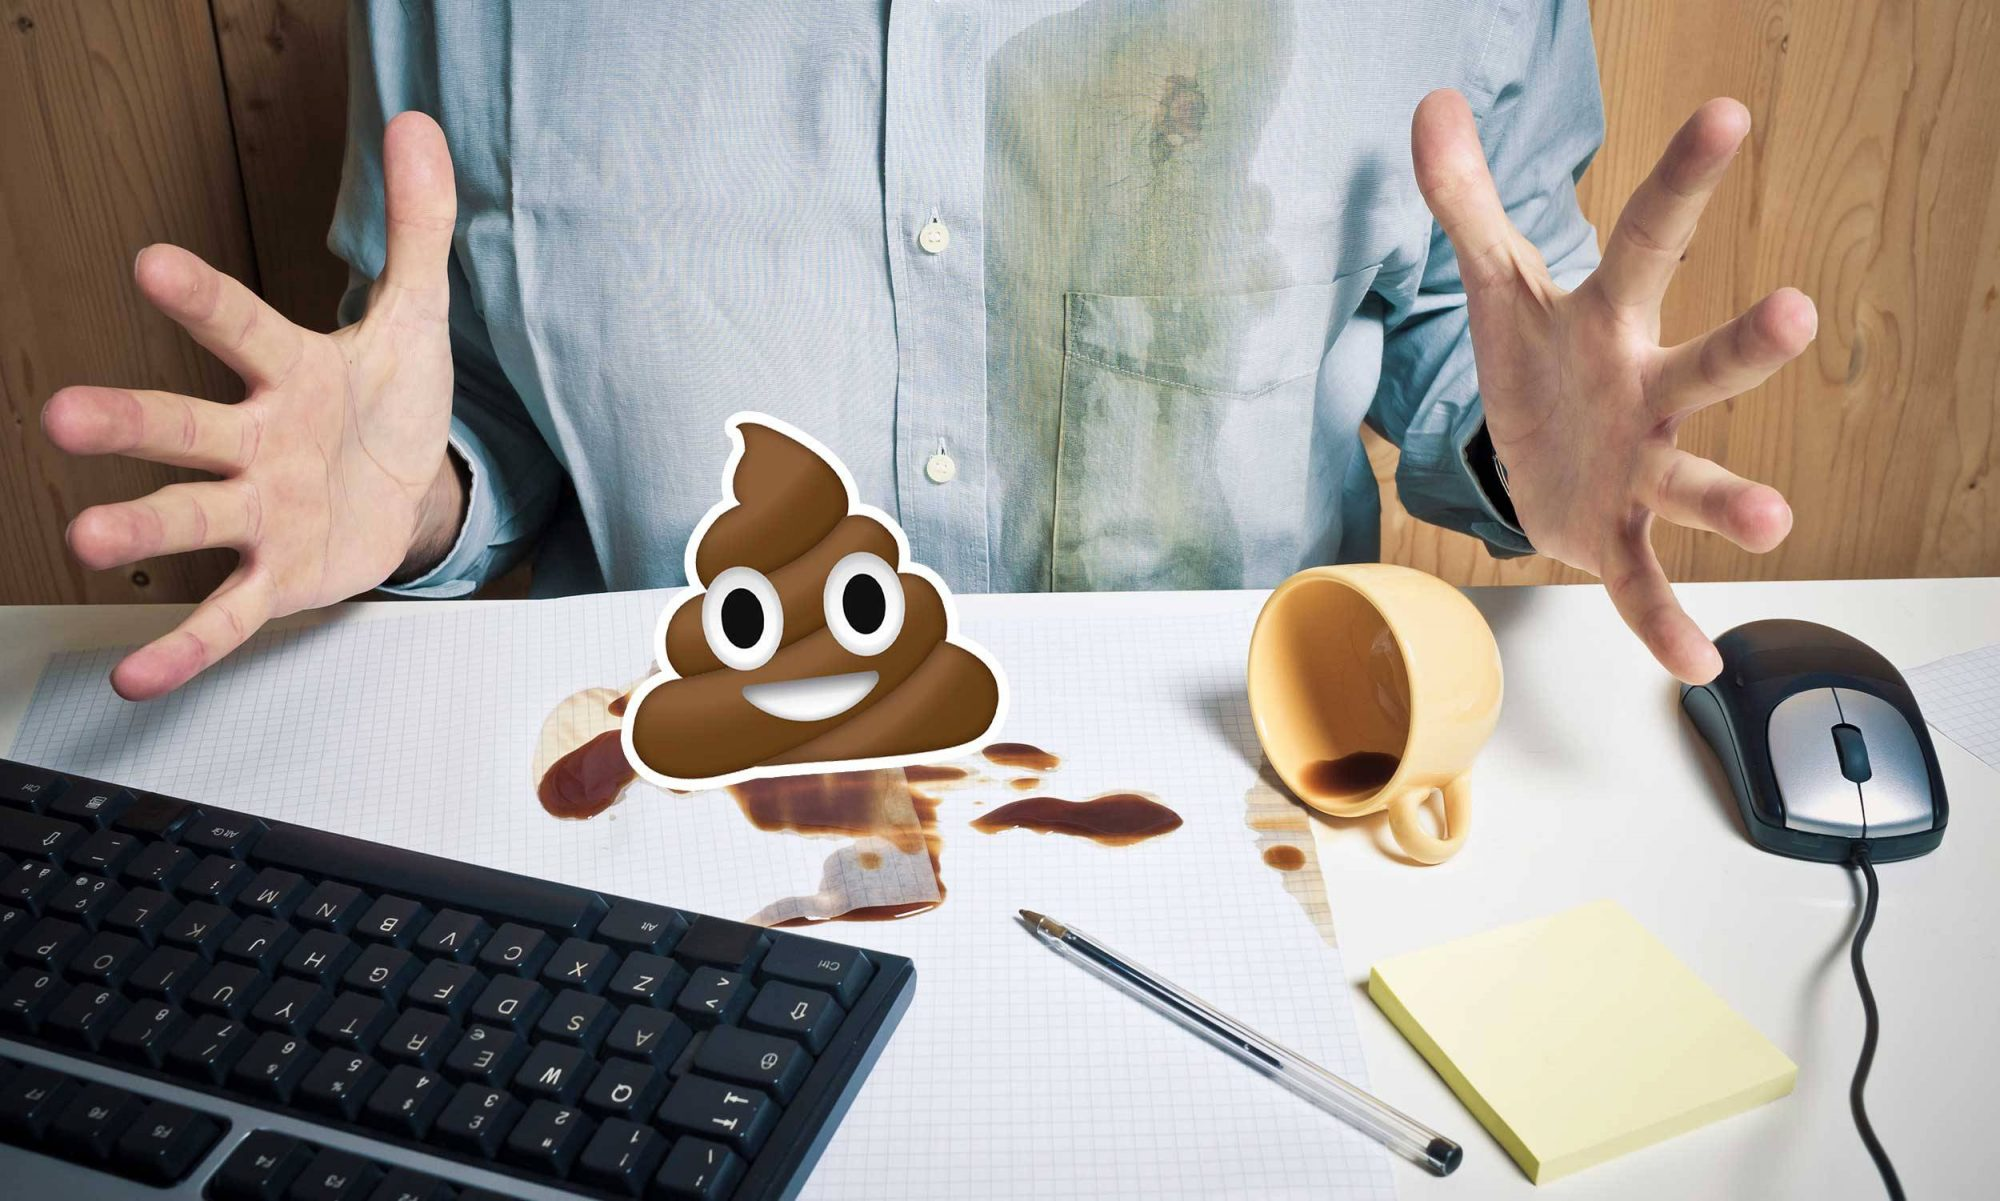 EC: Your Office Coffee Mug Is Probably Coated in Fecal Matter and That's OK